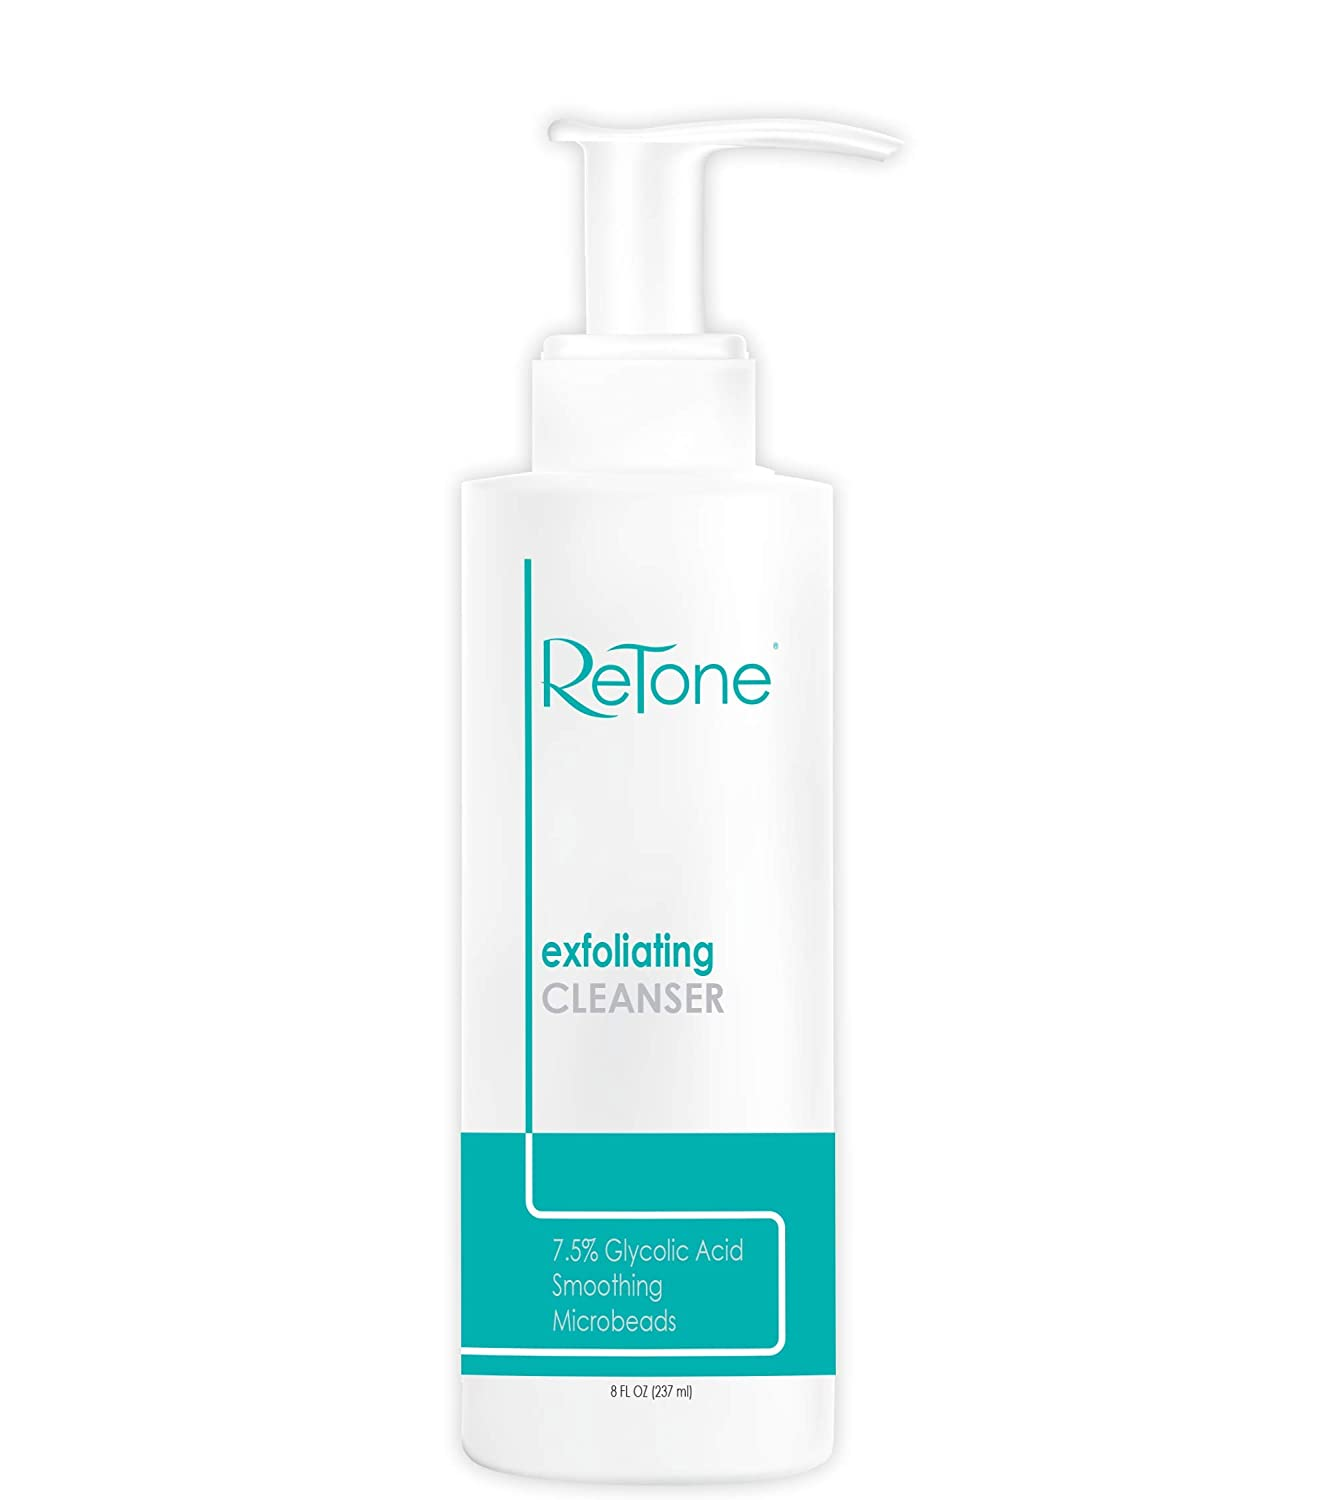 ReTone Exfoliating Cleanser